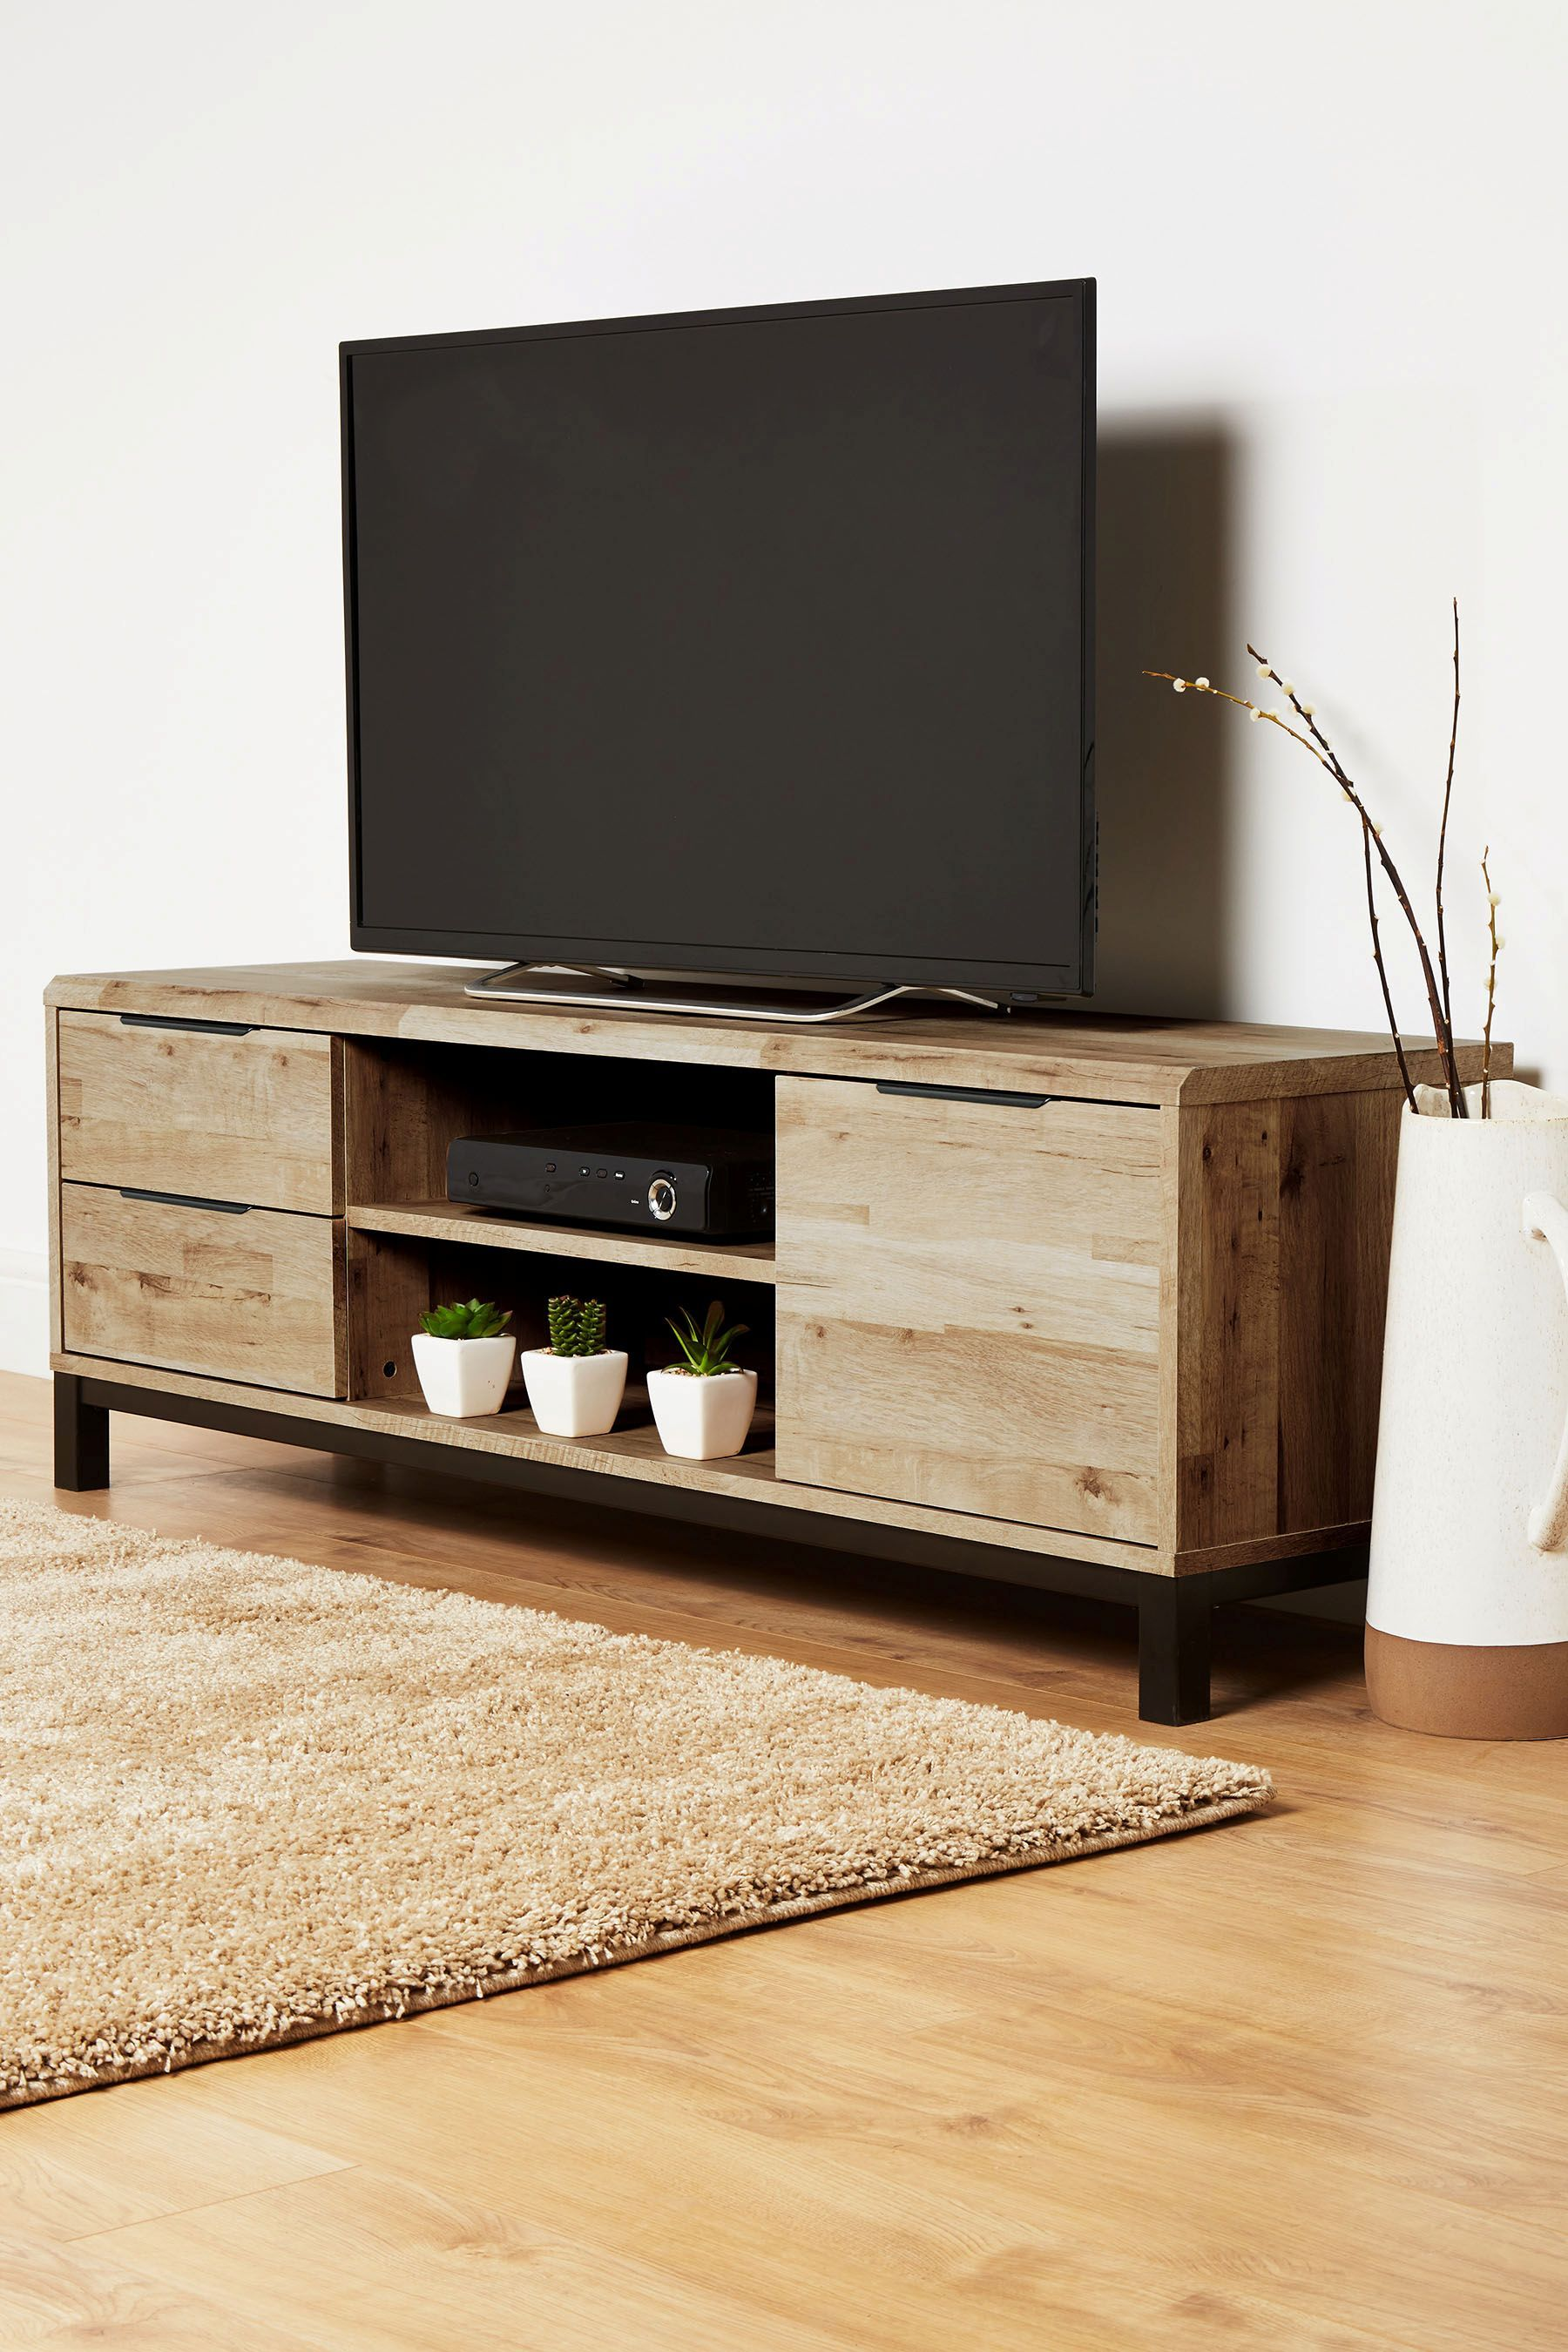 new concept af4e6 79dac Next Bronx Wide TV Stand - Natural | Decor in 2019 | Tv unit ...